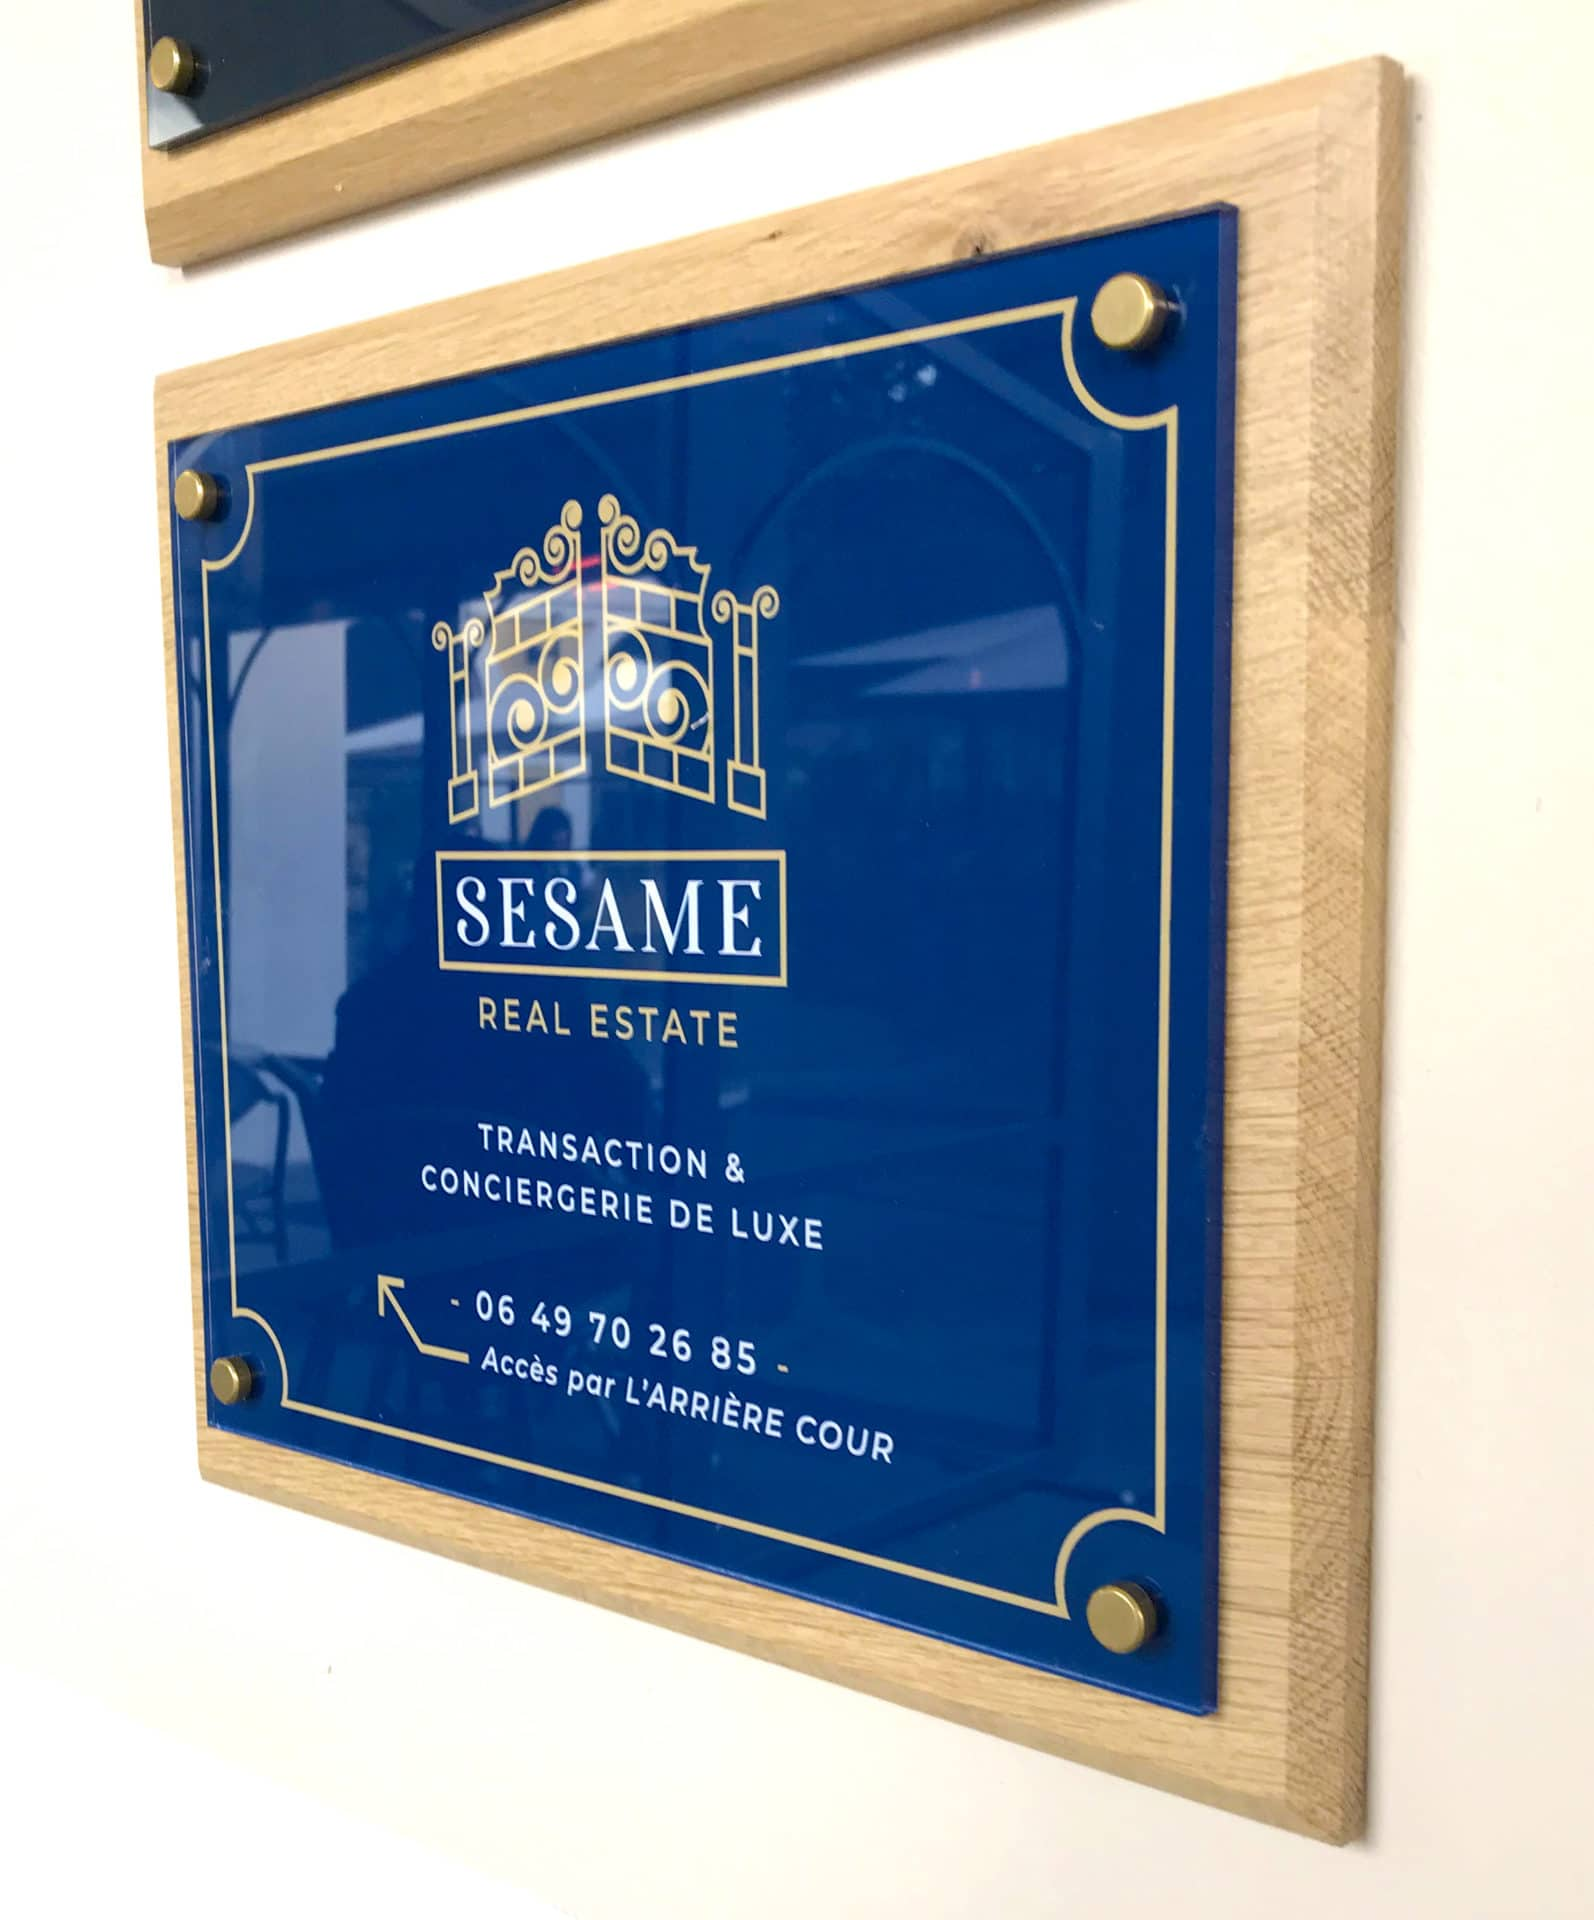 Sesame Real Estate